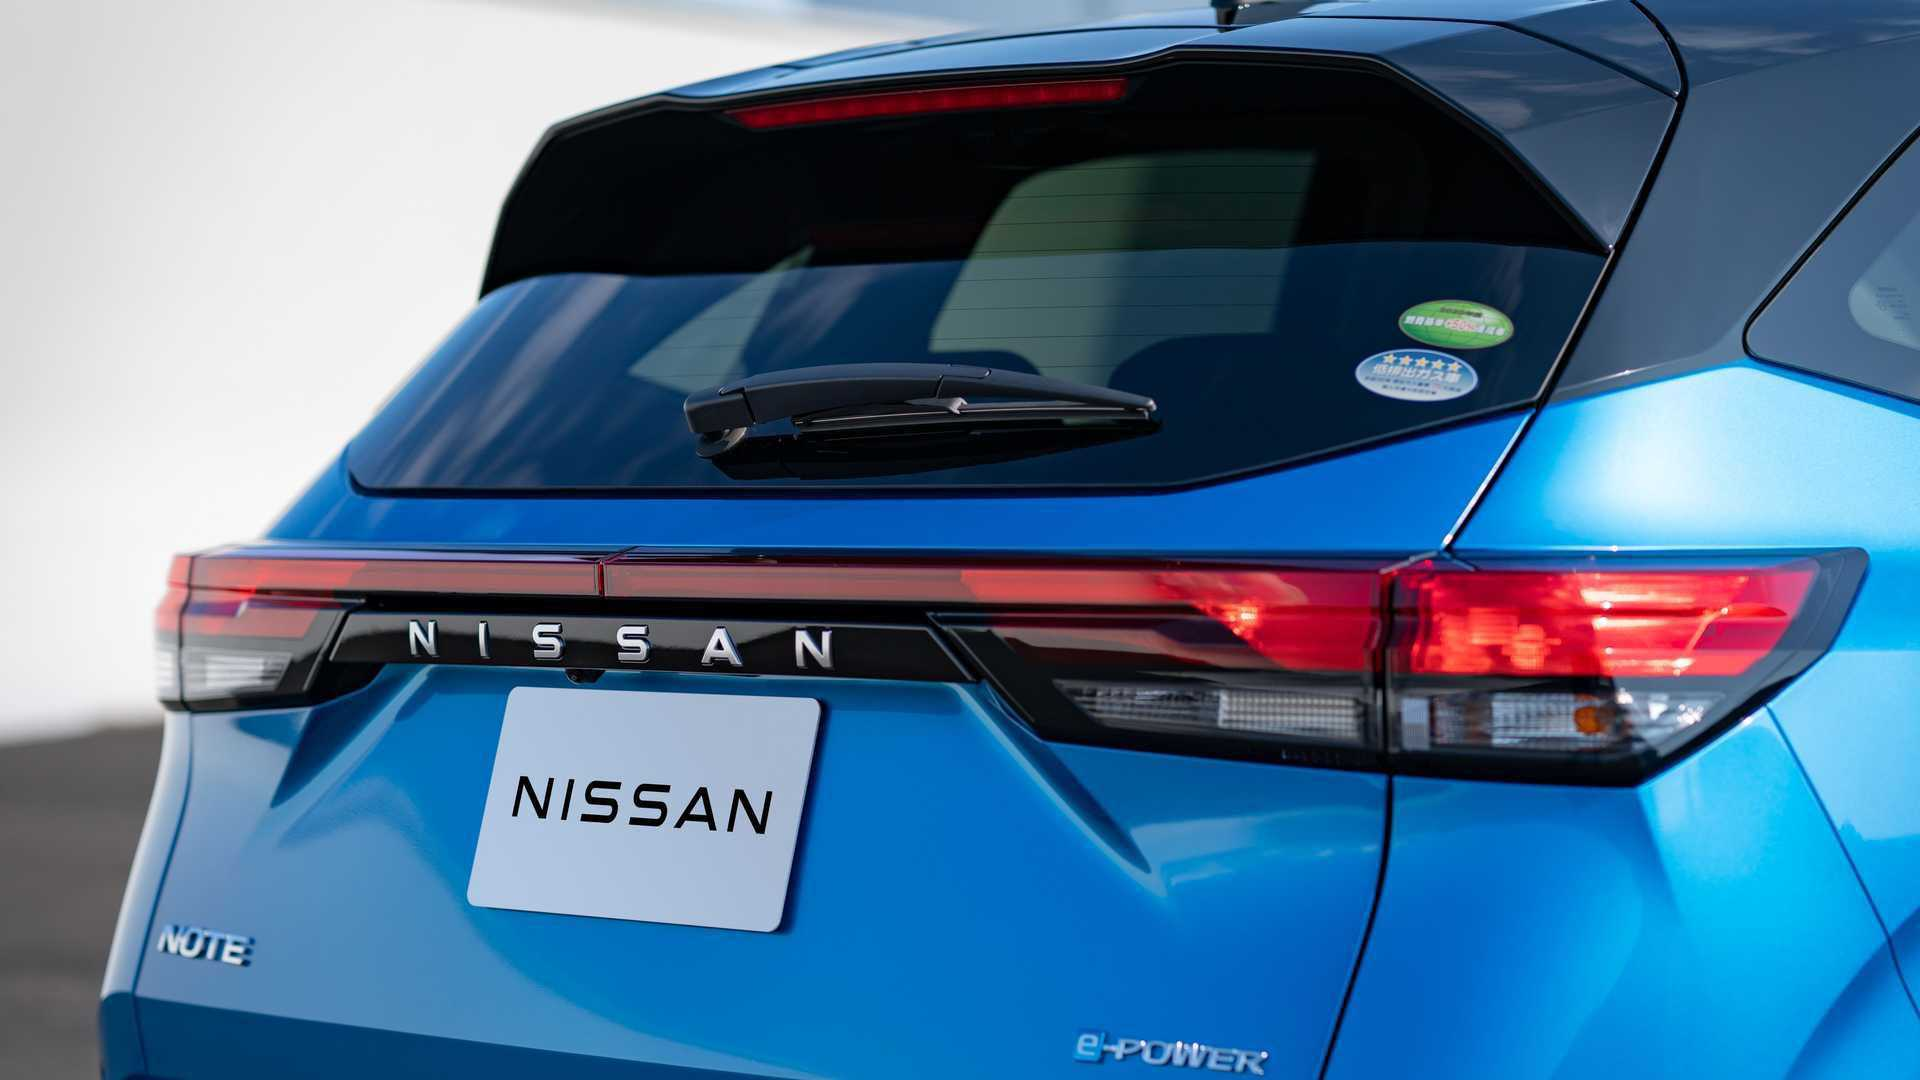 2021_Nissan_Note_0062